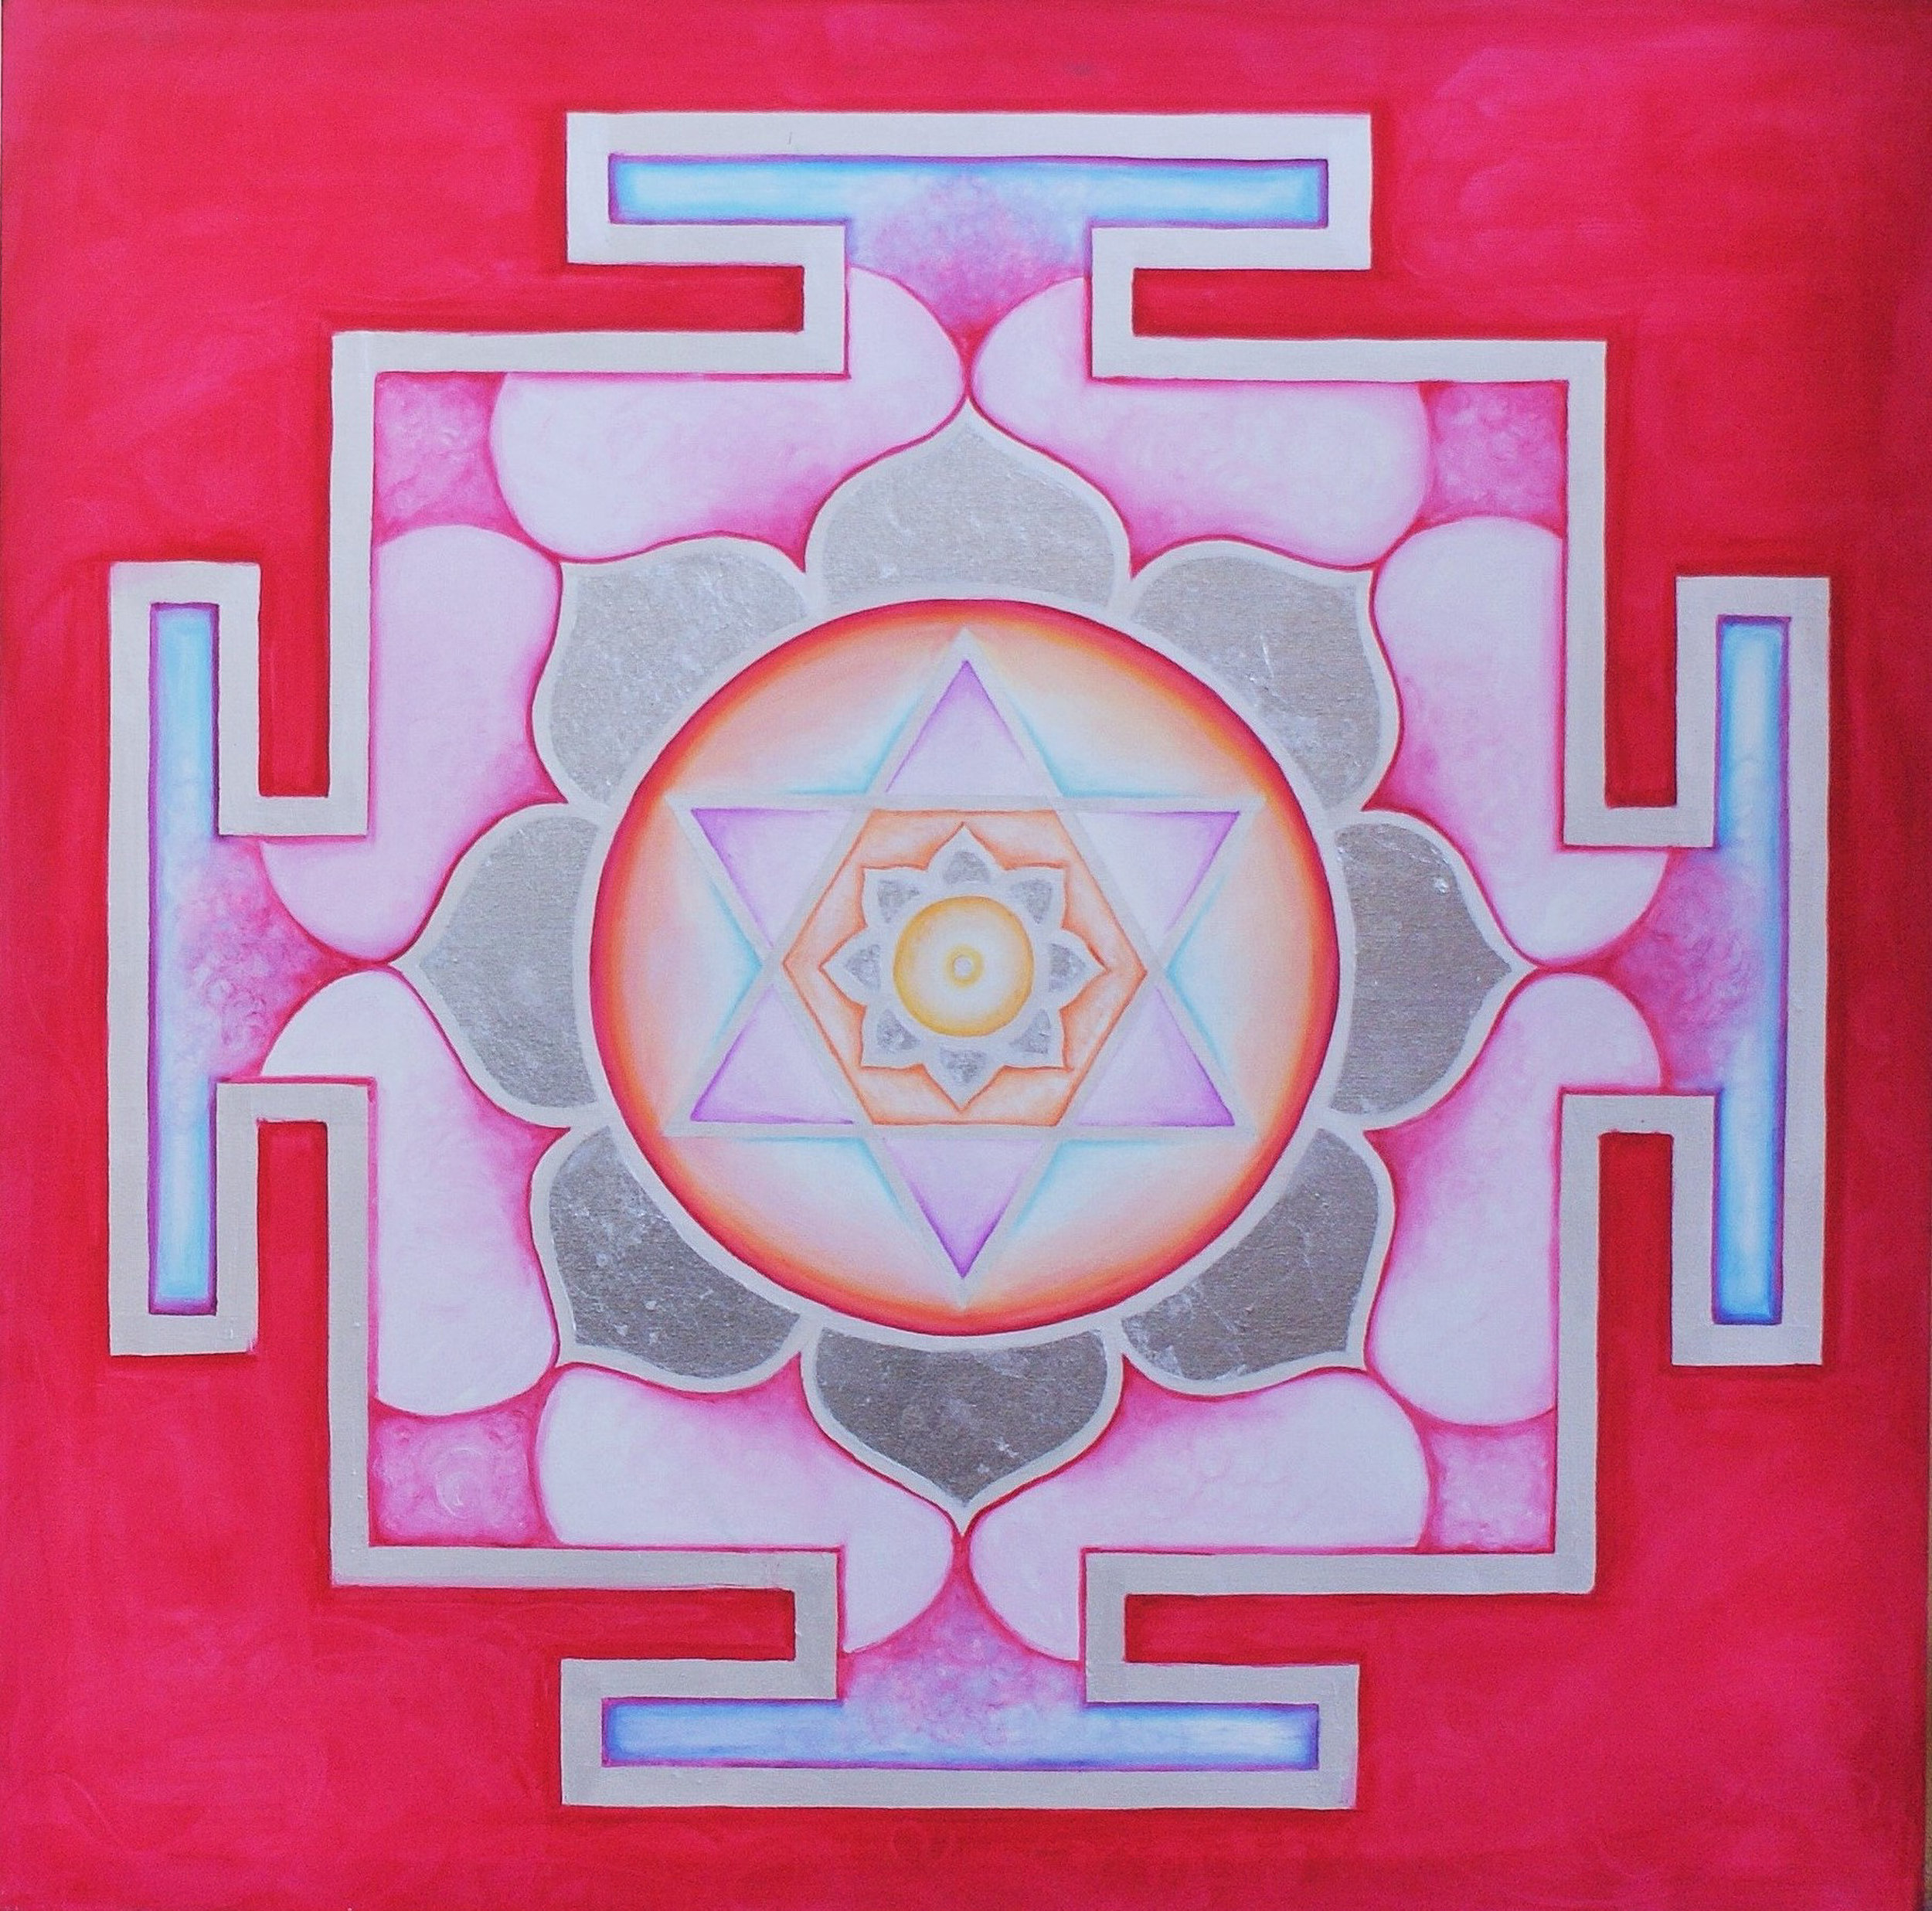 Yantra of the Great Cosmic Power Kamalatmika, oil on canvas, 100x100 cm (see full image in Gallery)